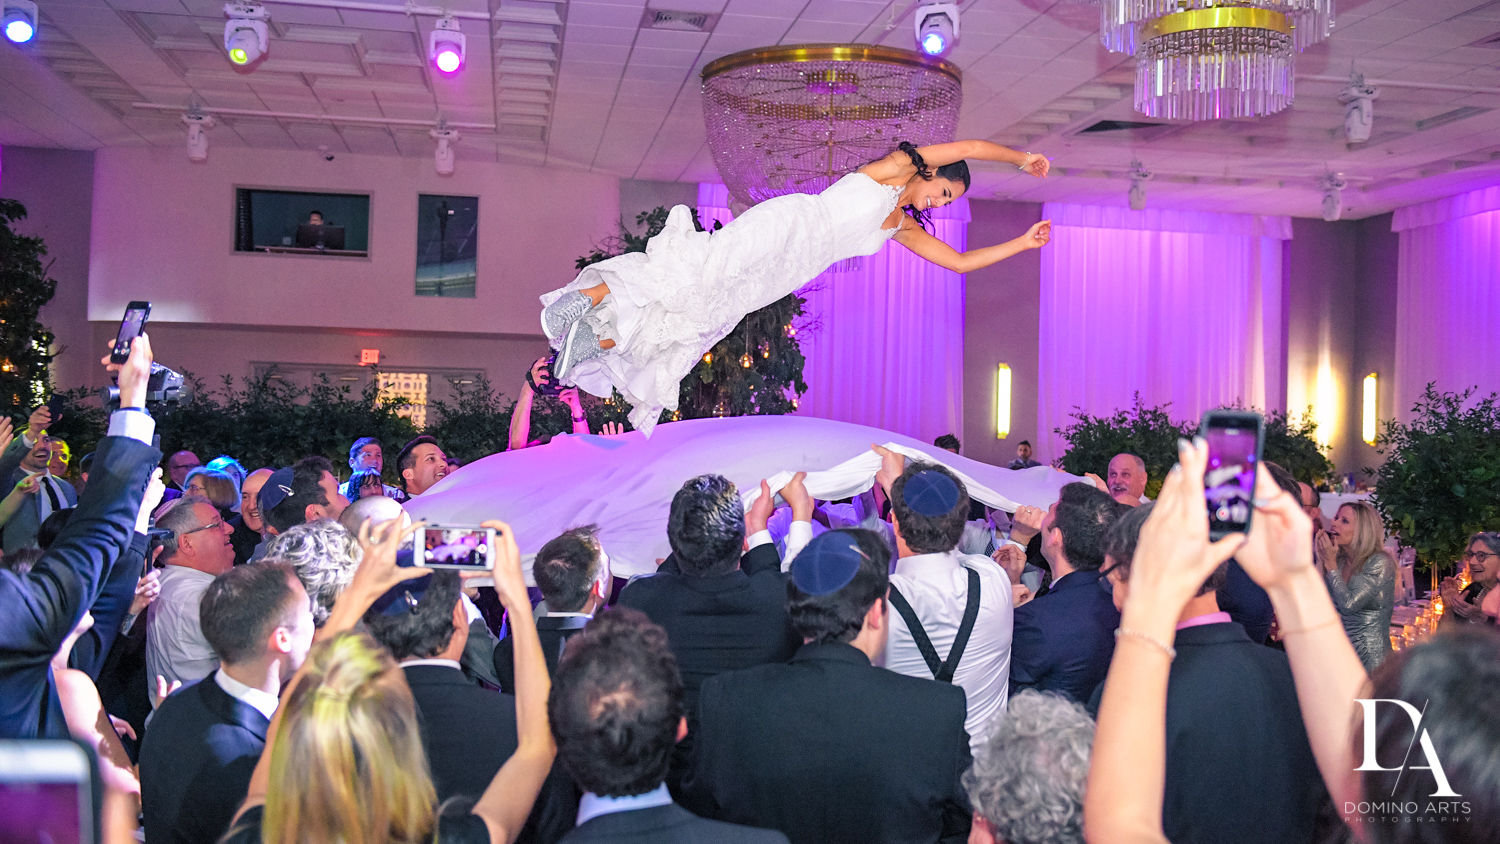 crazy fun party pictures at Classic Miami Beach Wedding at Temple Emanu-El and Emanuel Luxury Venue by Domino Arts Photography